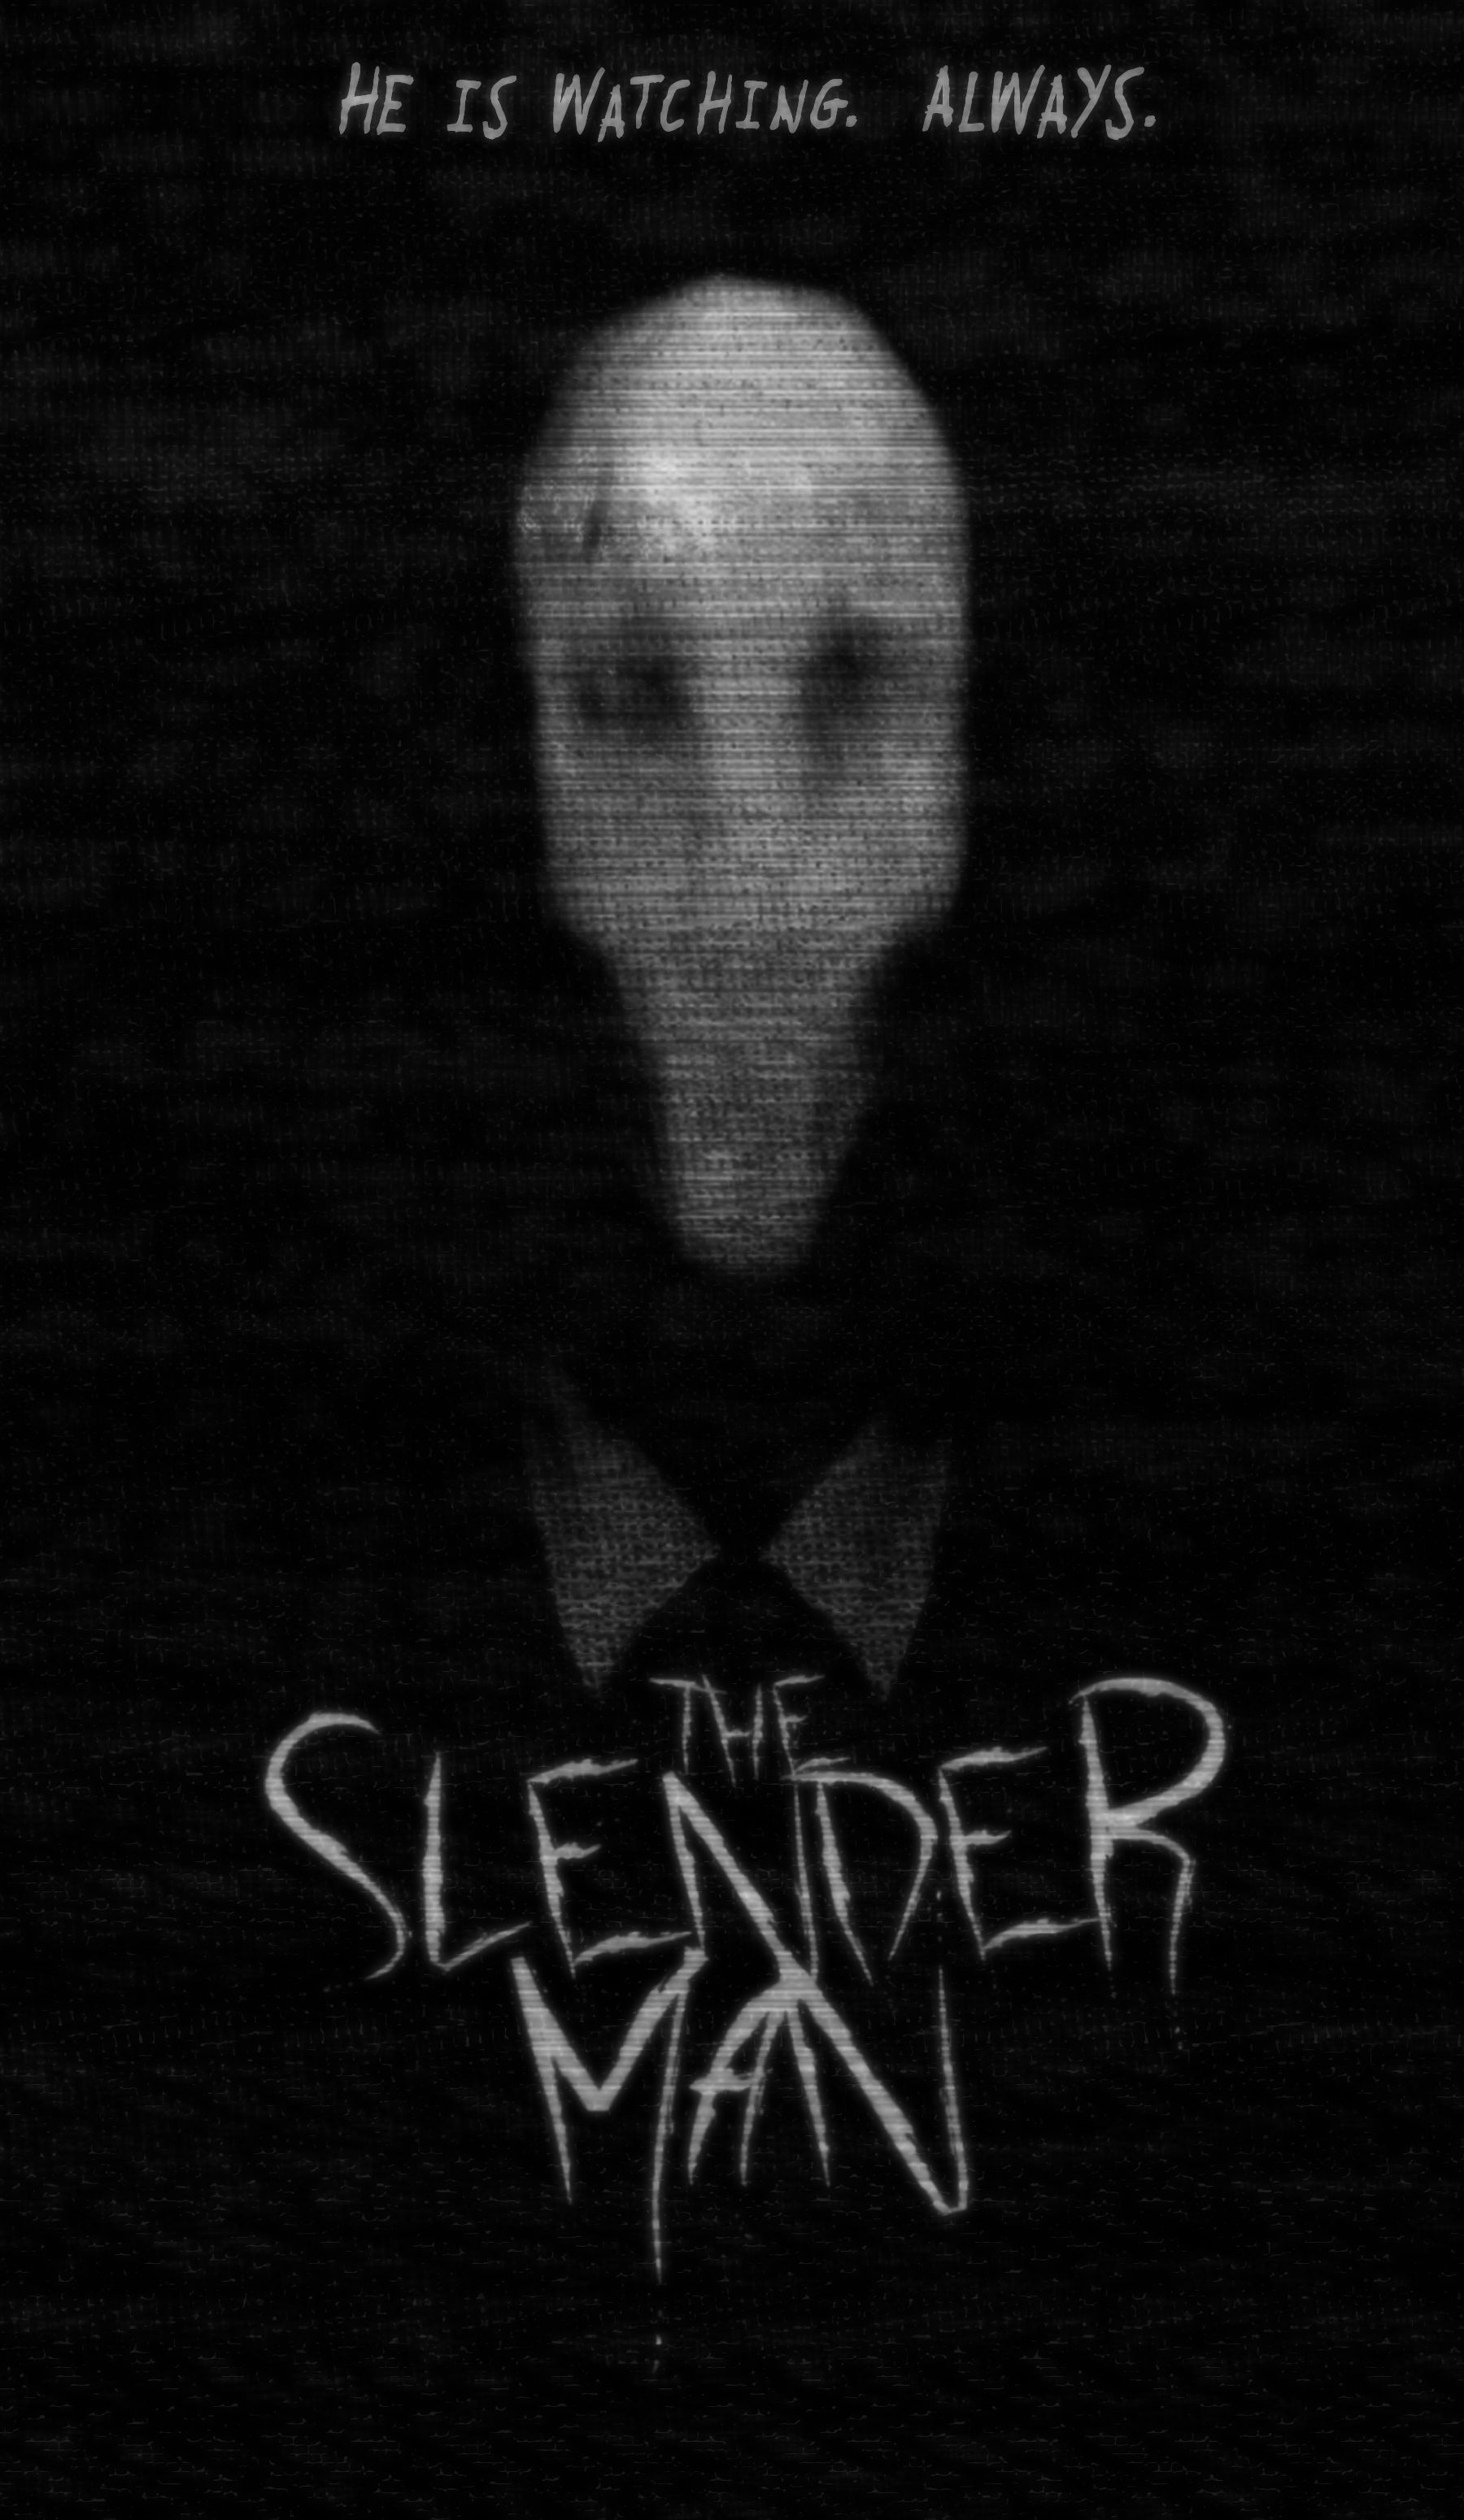 slender man movie - photo #26